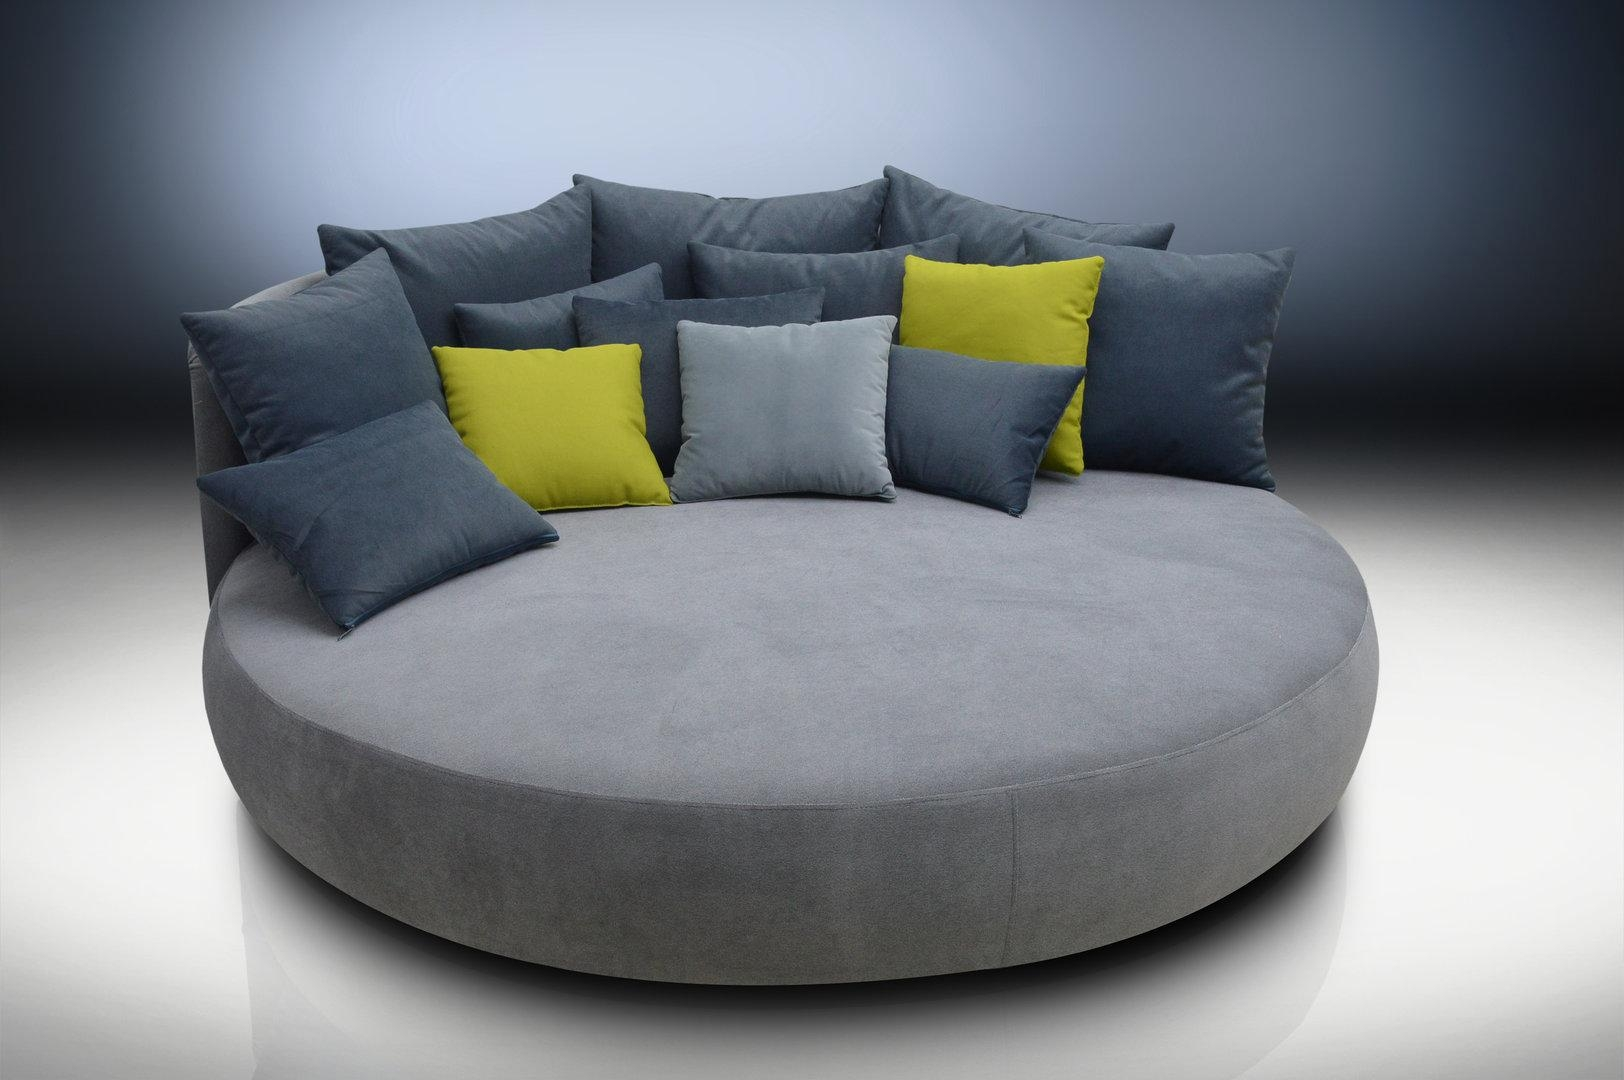 Sofas Center : Beige Sectional Sofas Sofa And Chairs With Nailhead Inside Round Sofa Chairs (Image 14 of 20)